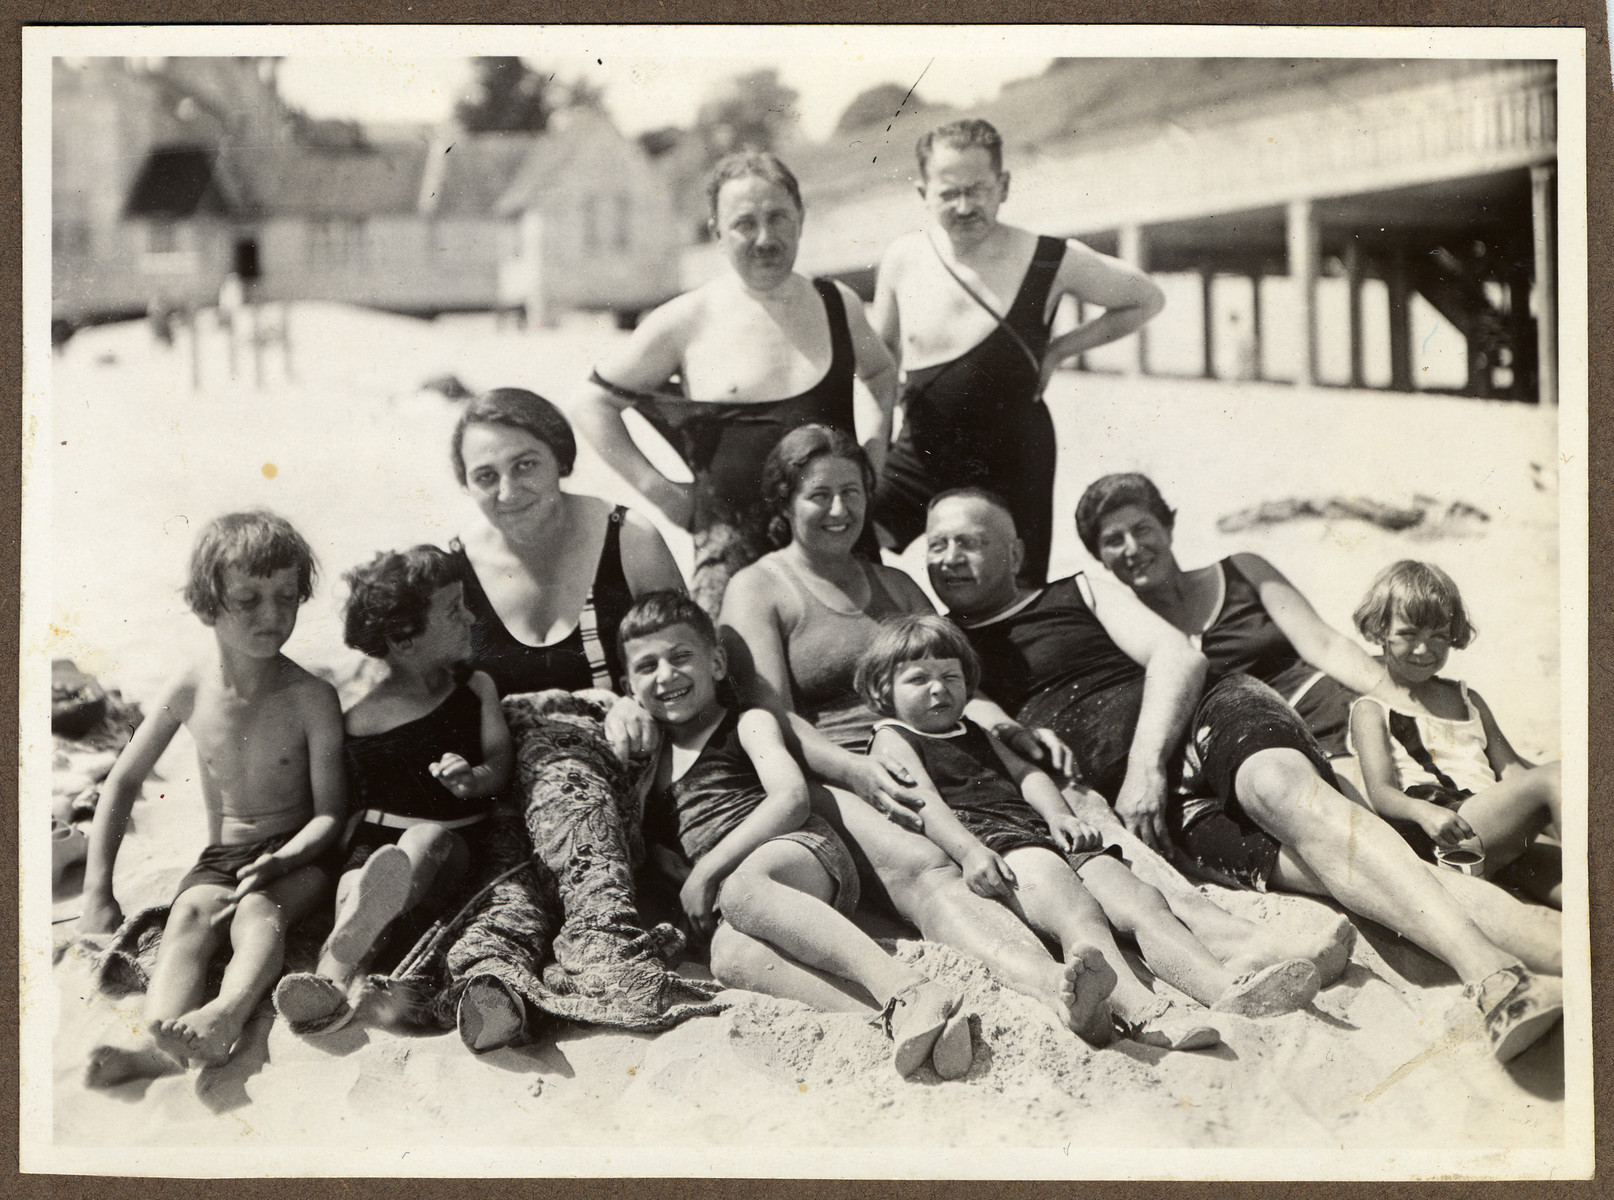 Three German-Jewish families relax on a beach in Heringsdorf on the Baltic Sea.  Pictured from left to right are Werner, Fritz Kohn, Karl-Heinz Kohn, their mother Lisbeth Kohn, Augusta Brager Bujakowski, Helga Bujakowski, Dr. Rudolph Kohn, mother of Lulu and Werner and Lulu.  Standing in back are the father of Lulu and Werner and Dr. Hans Adolf Bujakowski.